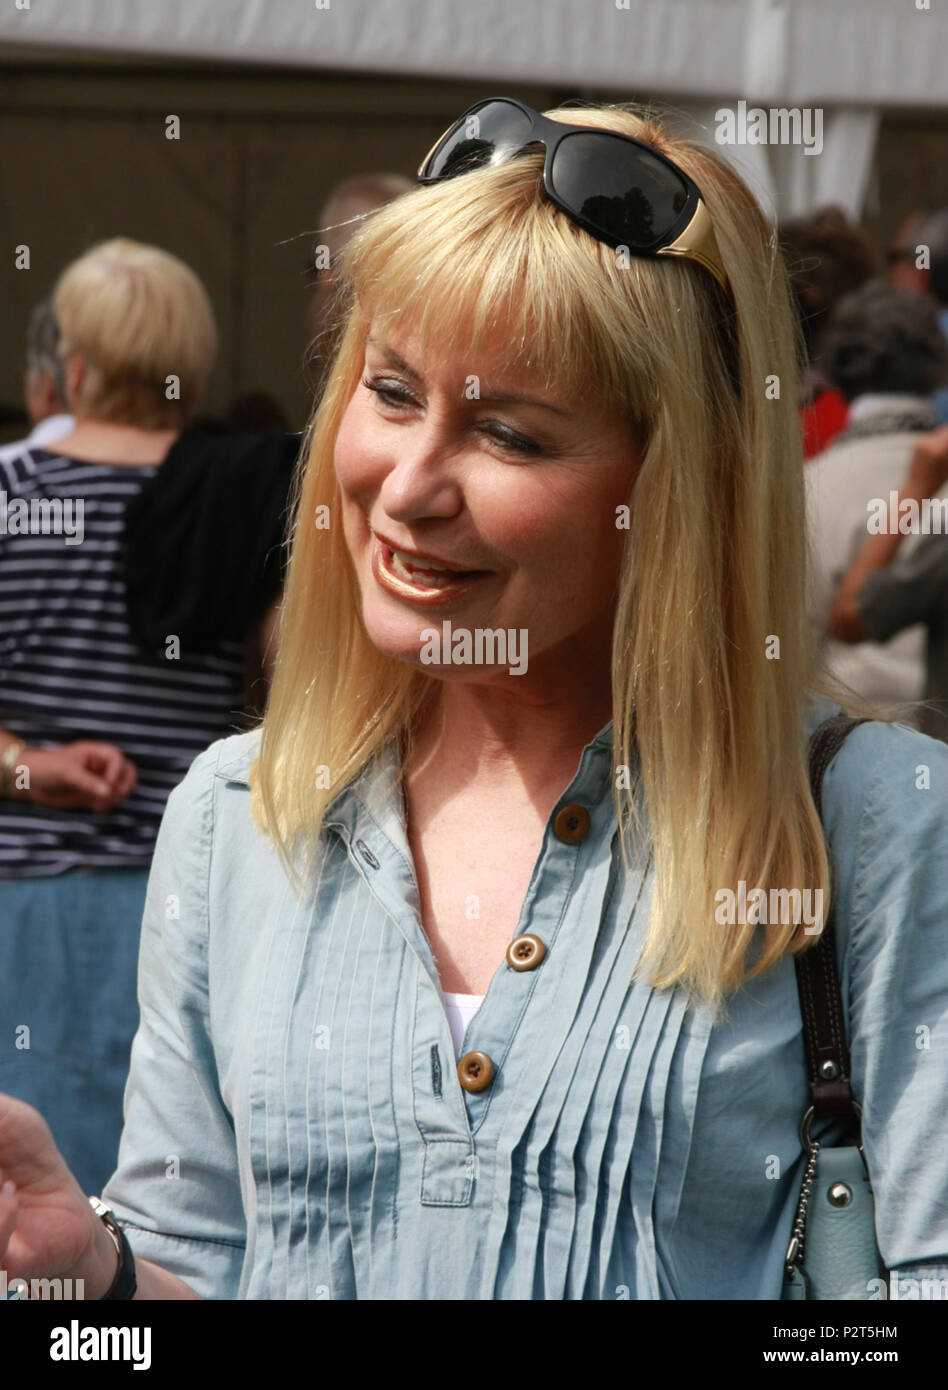 Sian Lloyd September 4th 2010. Welshpool, Wales. Welsh Food Festival. The celebrity TV presenter and weather forecaster chats to members of the public - Stock Image